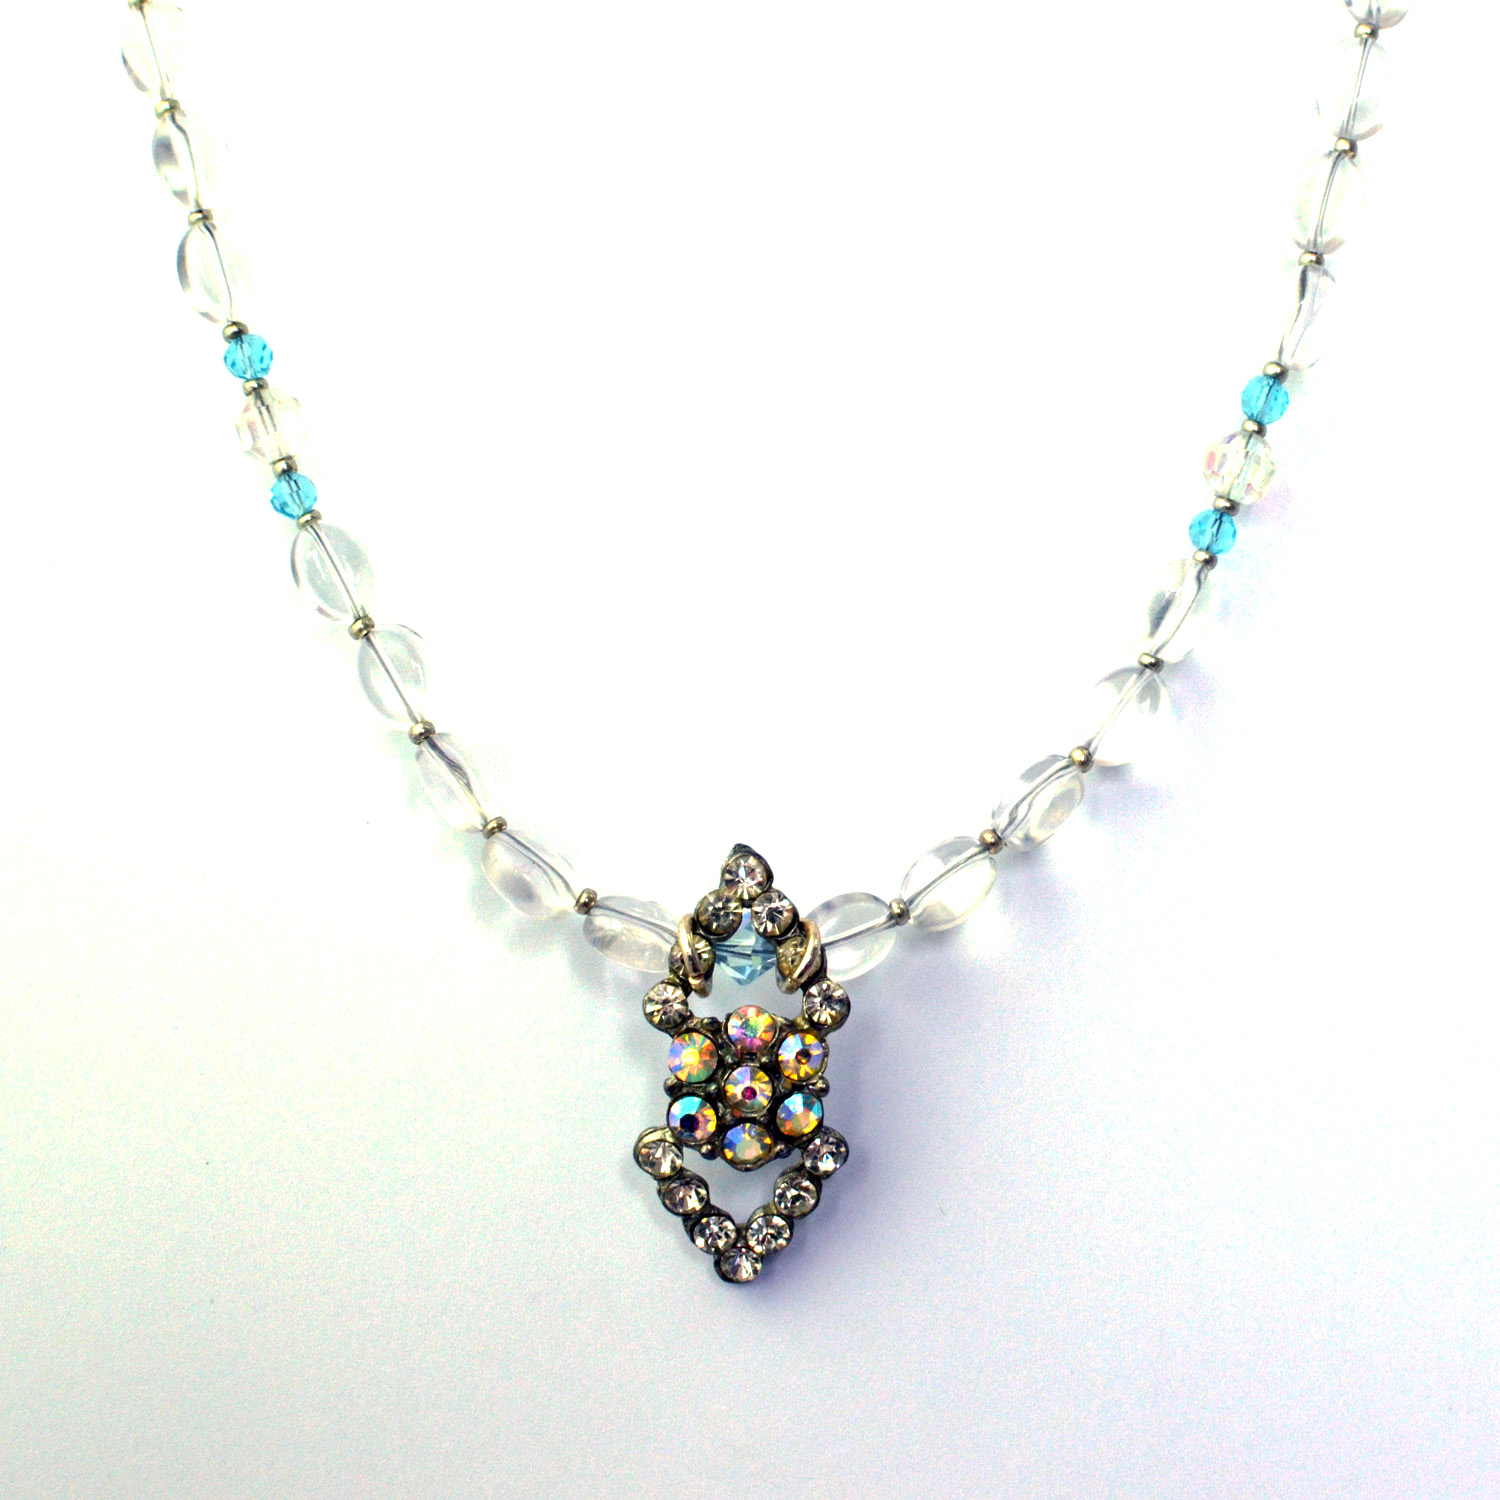 reworked necklace